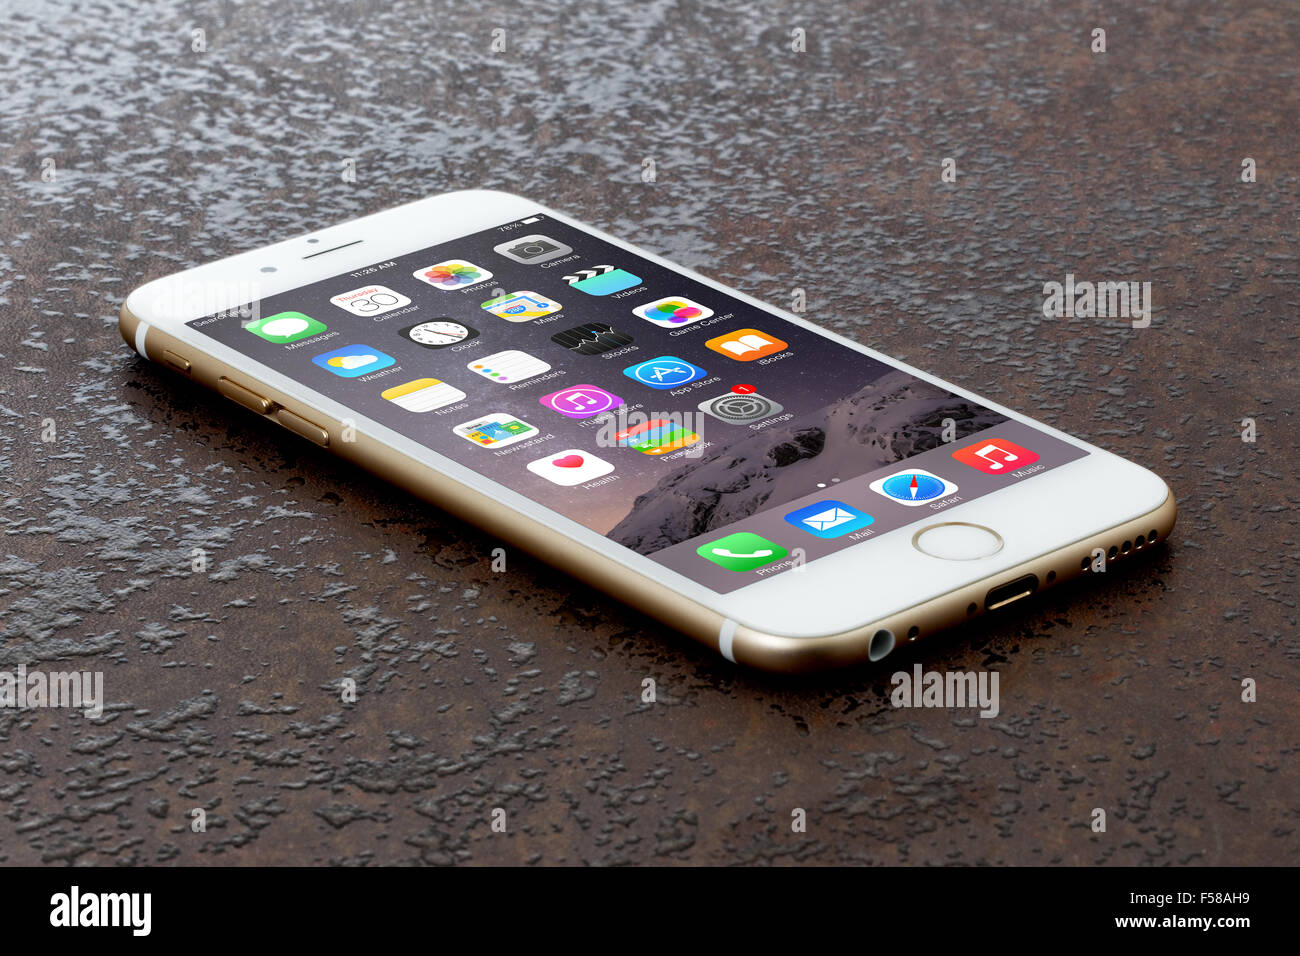 Golden Iphone 6 On Stone Table Stock Photo 89309061 Alamy